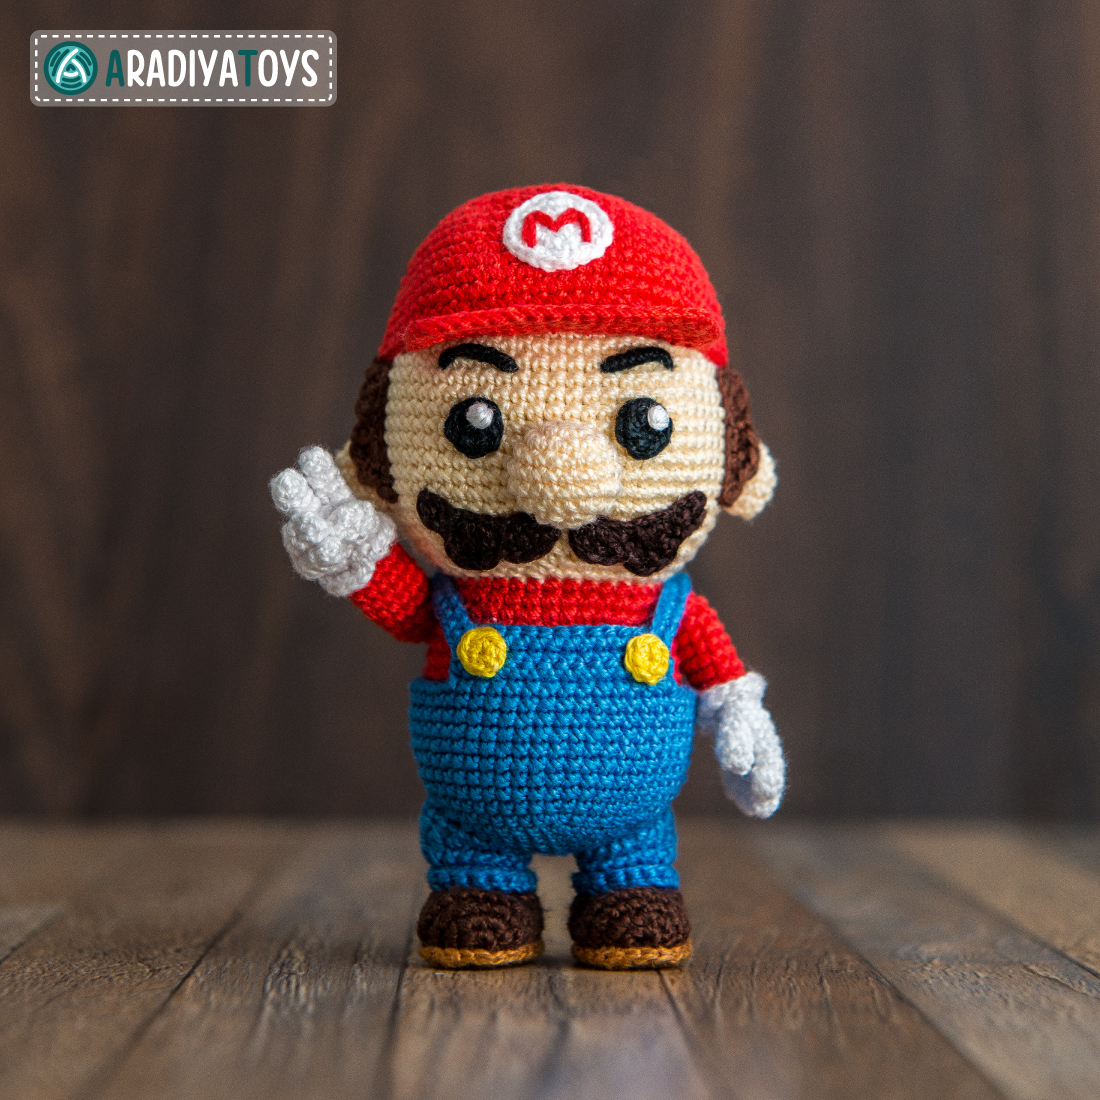 Crochet Pattern of Mario by AradiyaToys